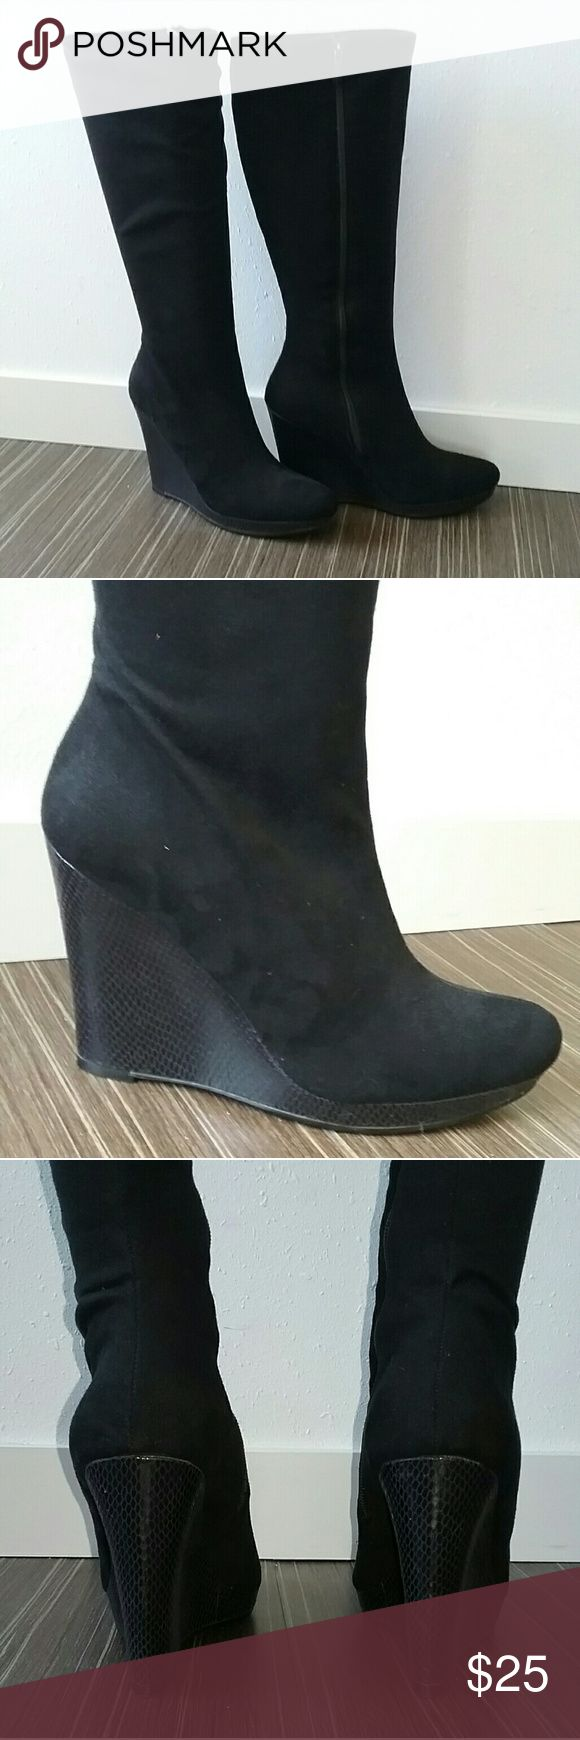 Knee High Wedge Boots Black knee high boots with wegde heel. Only worn twice. Heel measures 4.5 inches. Impo Shoes Heeled Boots